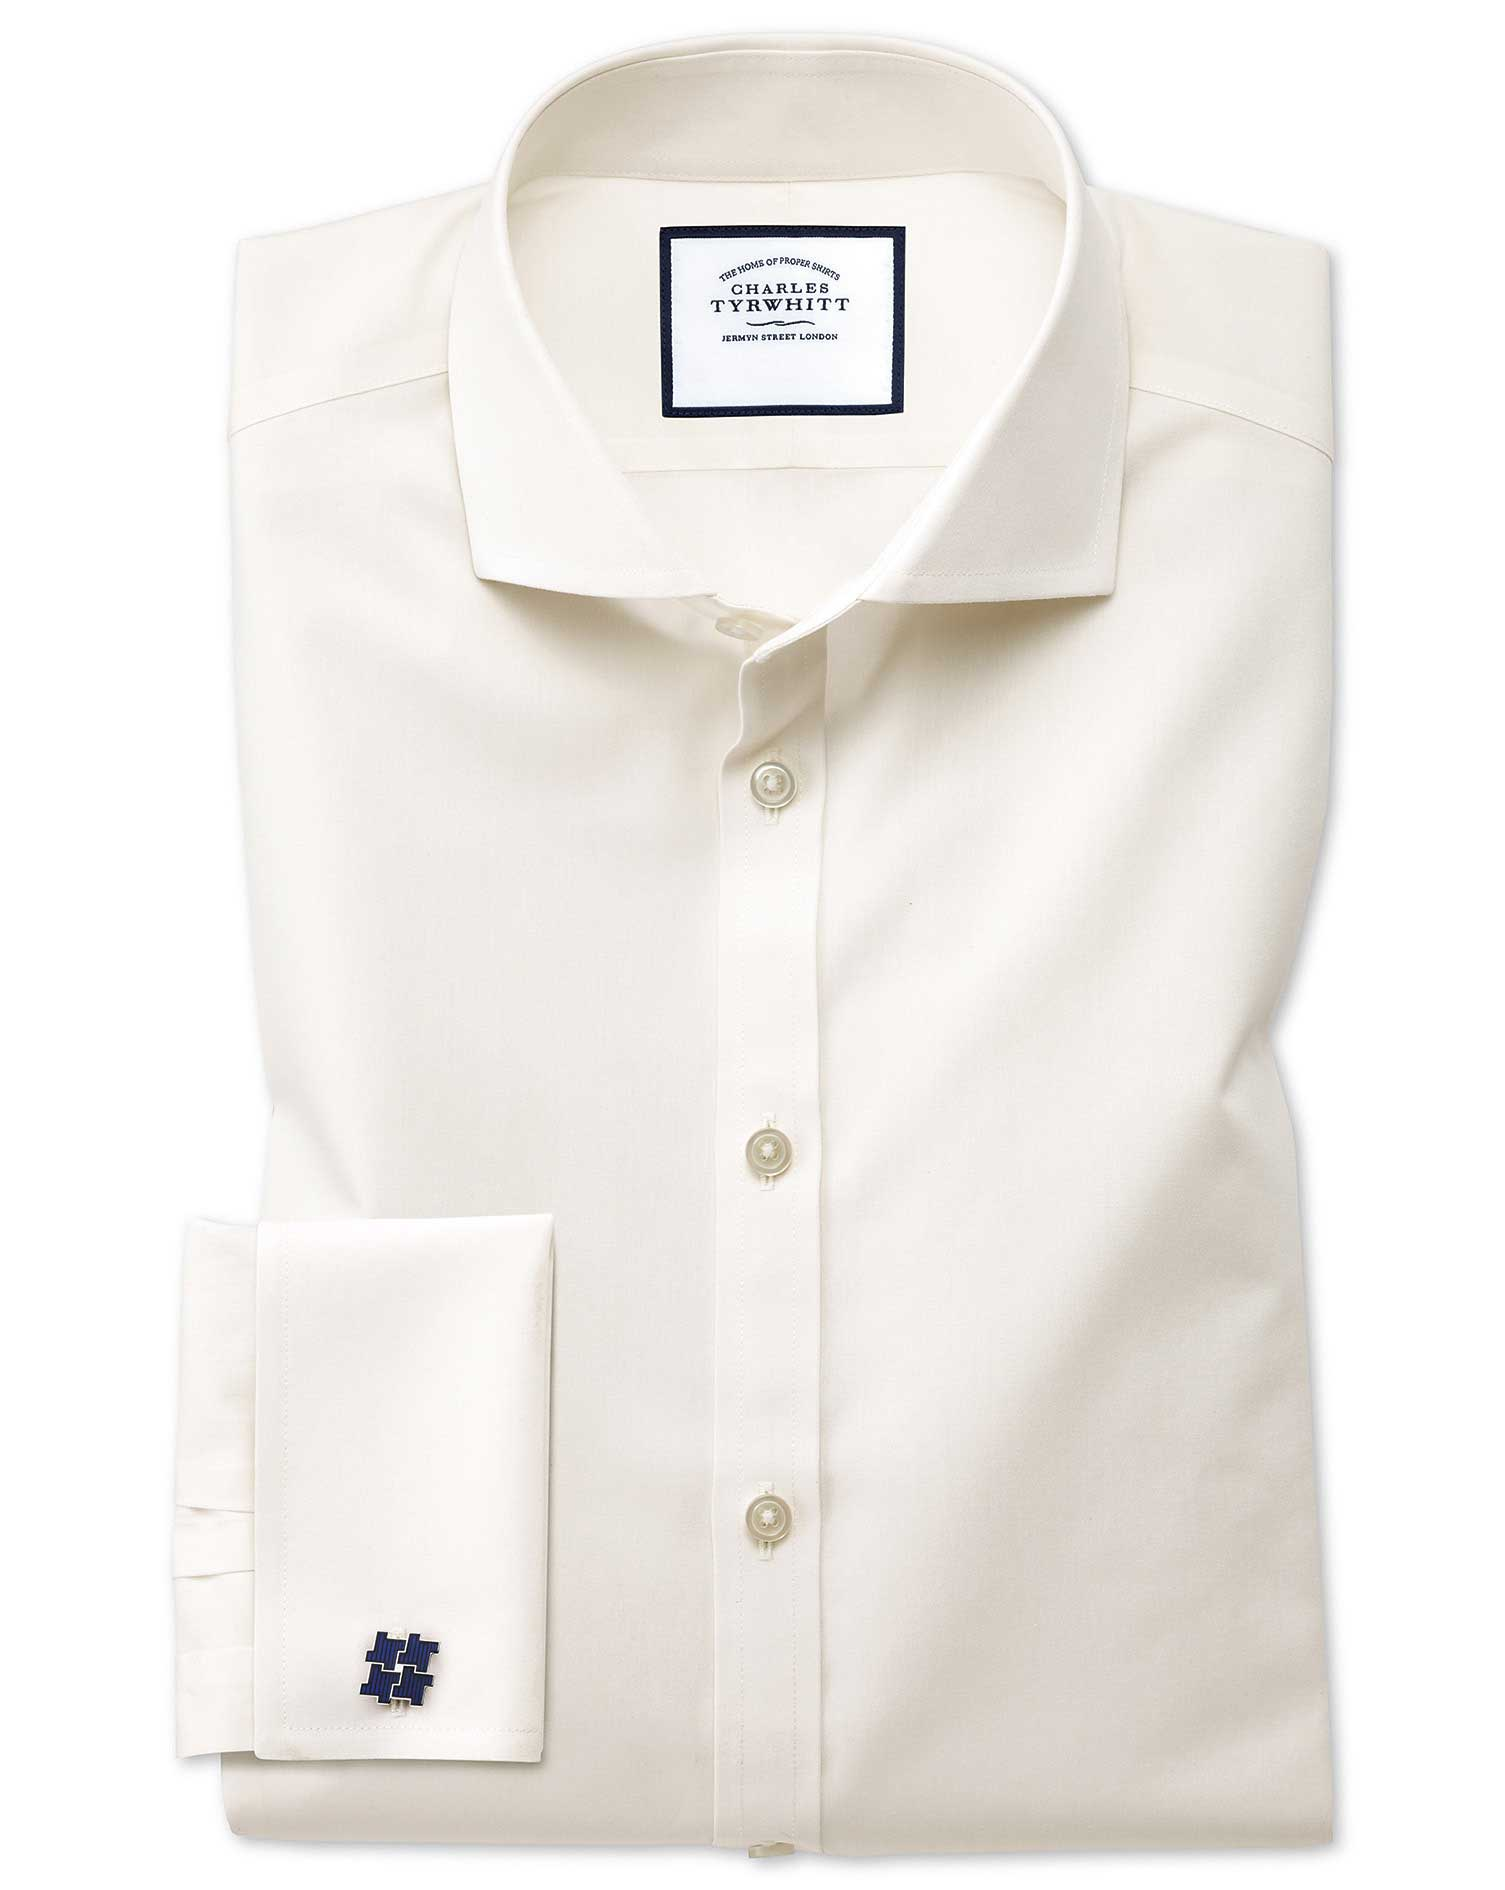 Extra Slim Fit Cutaway Non-Iron Poplin Cream Cotton Formal Shirt Double Cuff Size 16/36 by Charles T